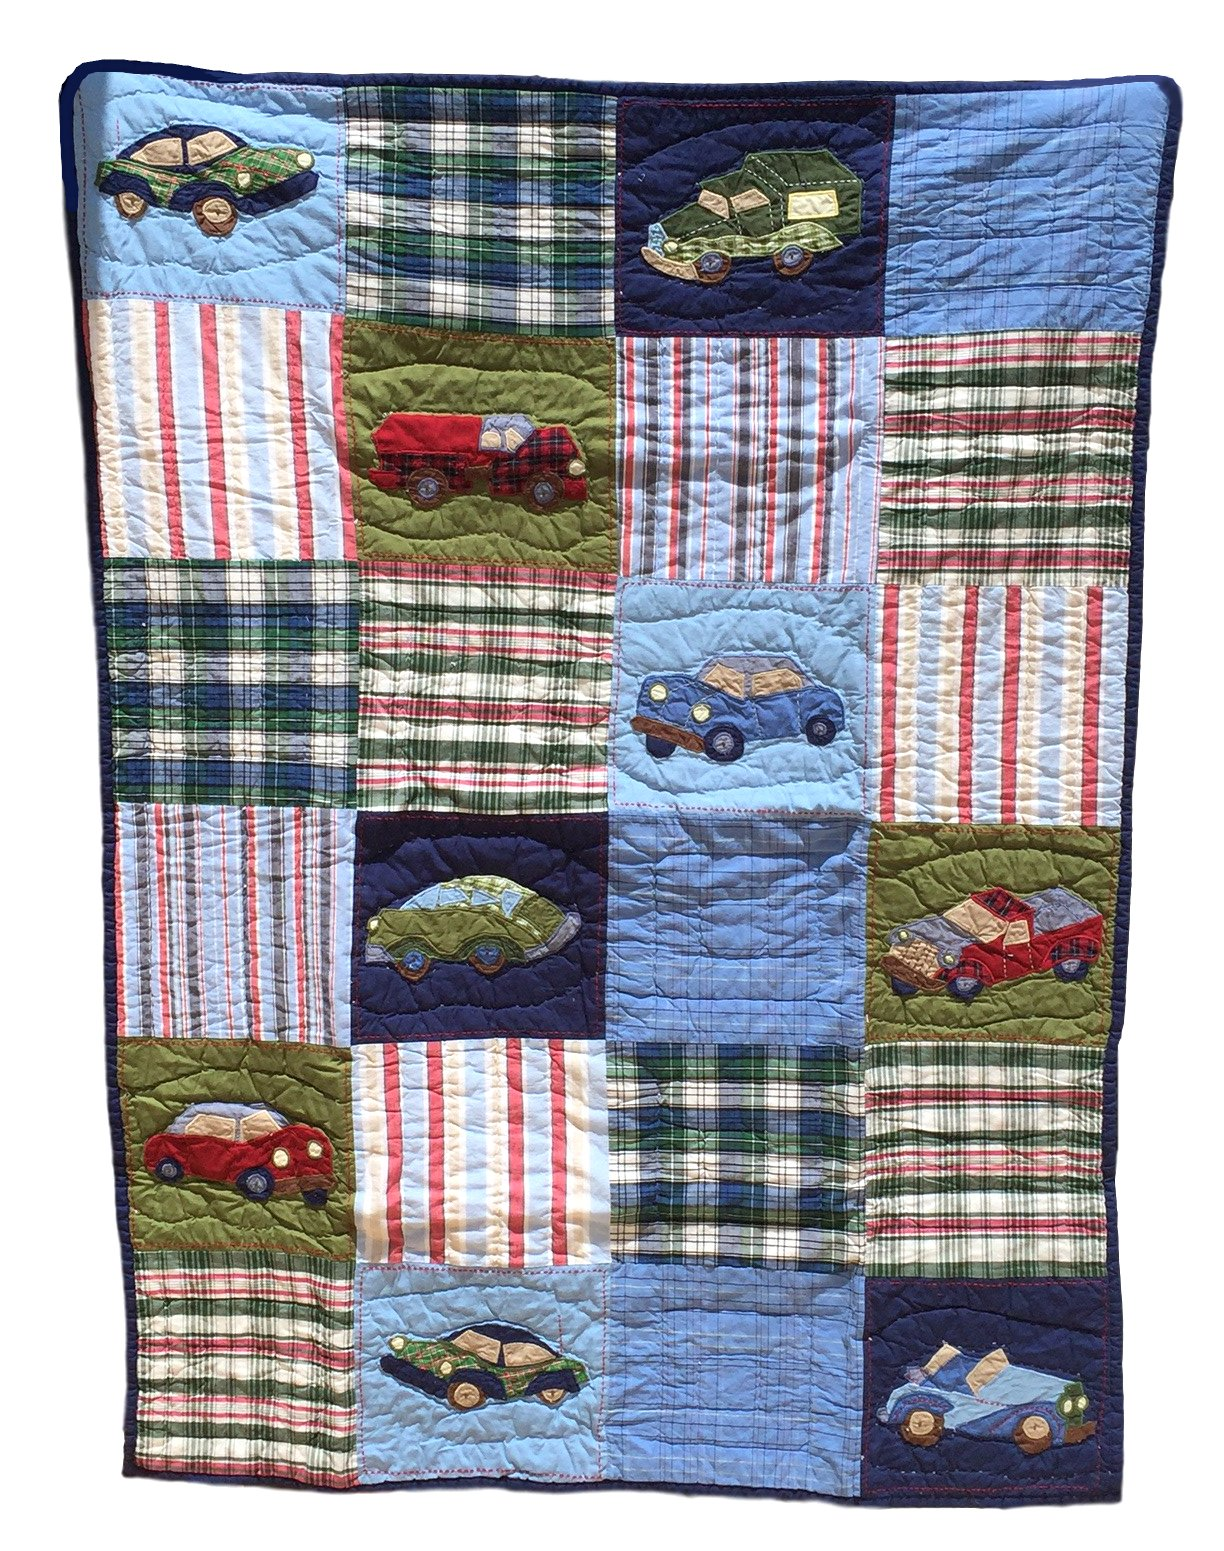 Baby Boy Quilts, Baby Blankets For Boys in a Patchwork Quilt Style, With Appliques, 100% Cotton, Include Quilt and 1 Coordinated Sham, 61 x 50, Multiple Designs (Racing Car Baby)